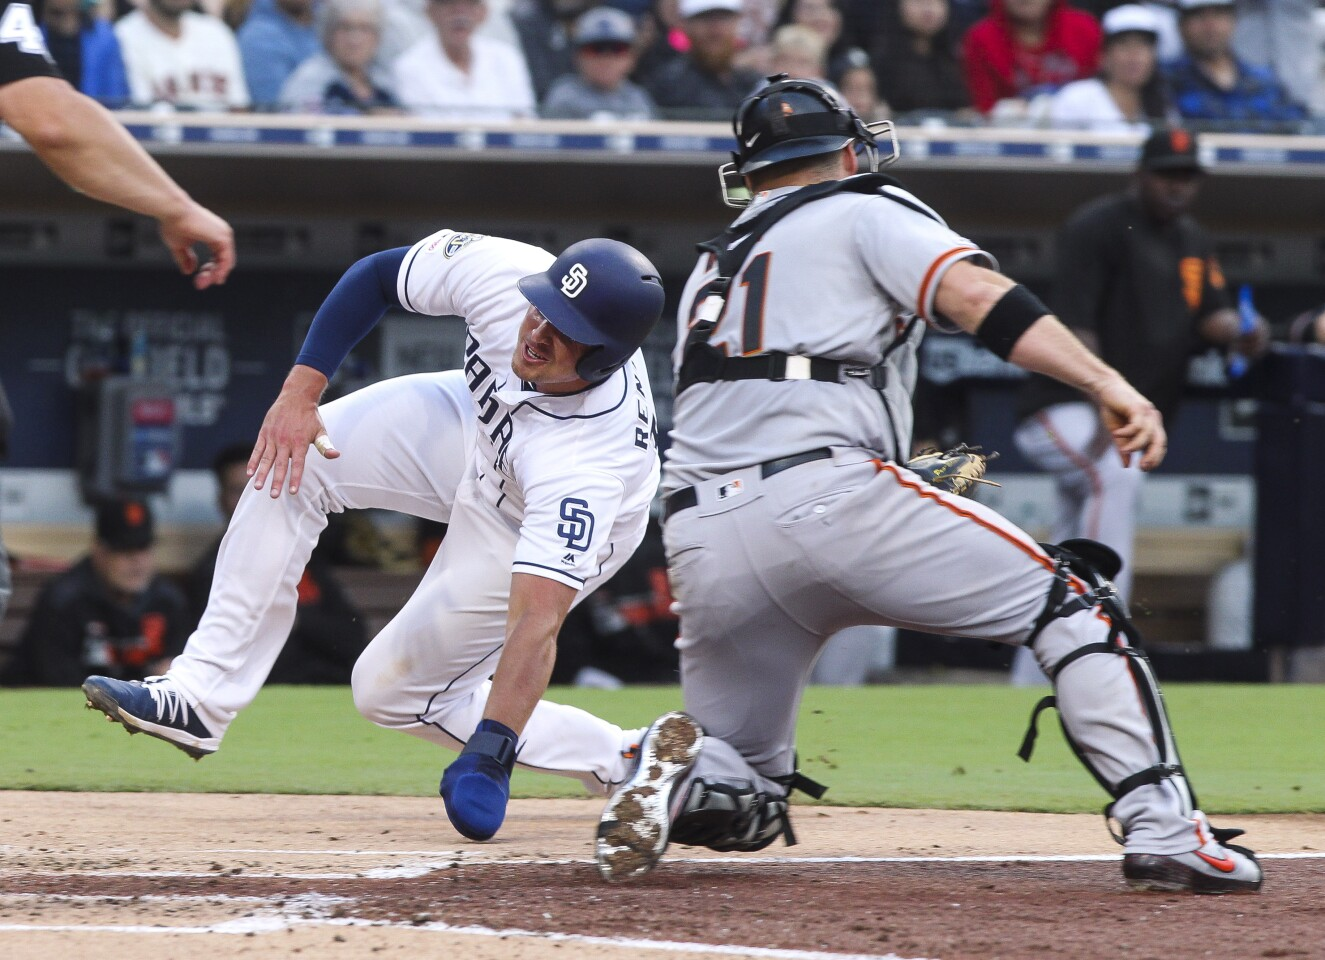 The Padres' Hunter Renfroe is tagged out at home plate by Giants' catcher Stephen Vogt as he tries to score on a single hit by Greg Garcia in the third inning at Petco Park on Wednesday, July 3, 2019 in San Diego, California.